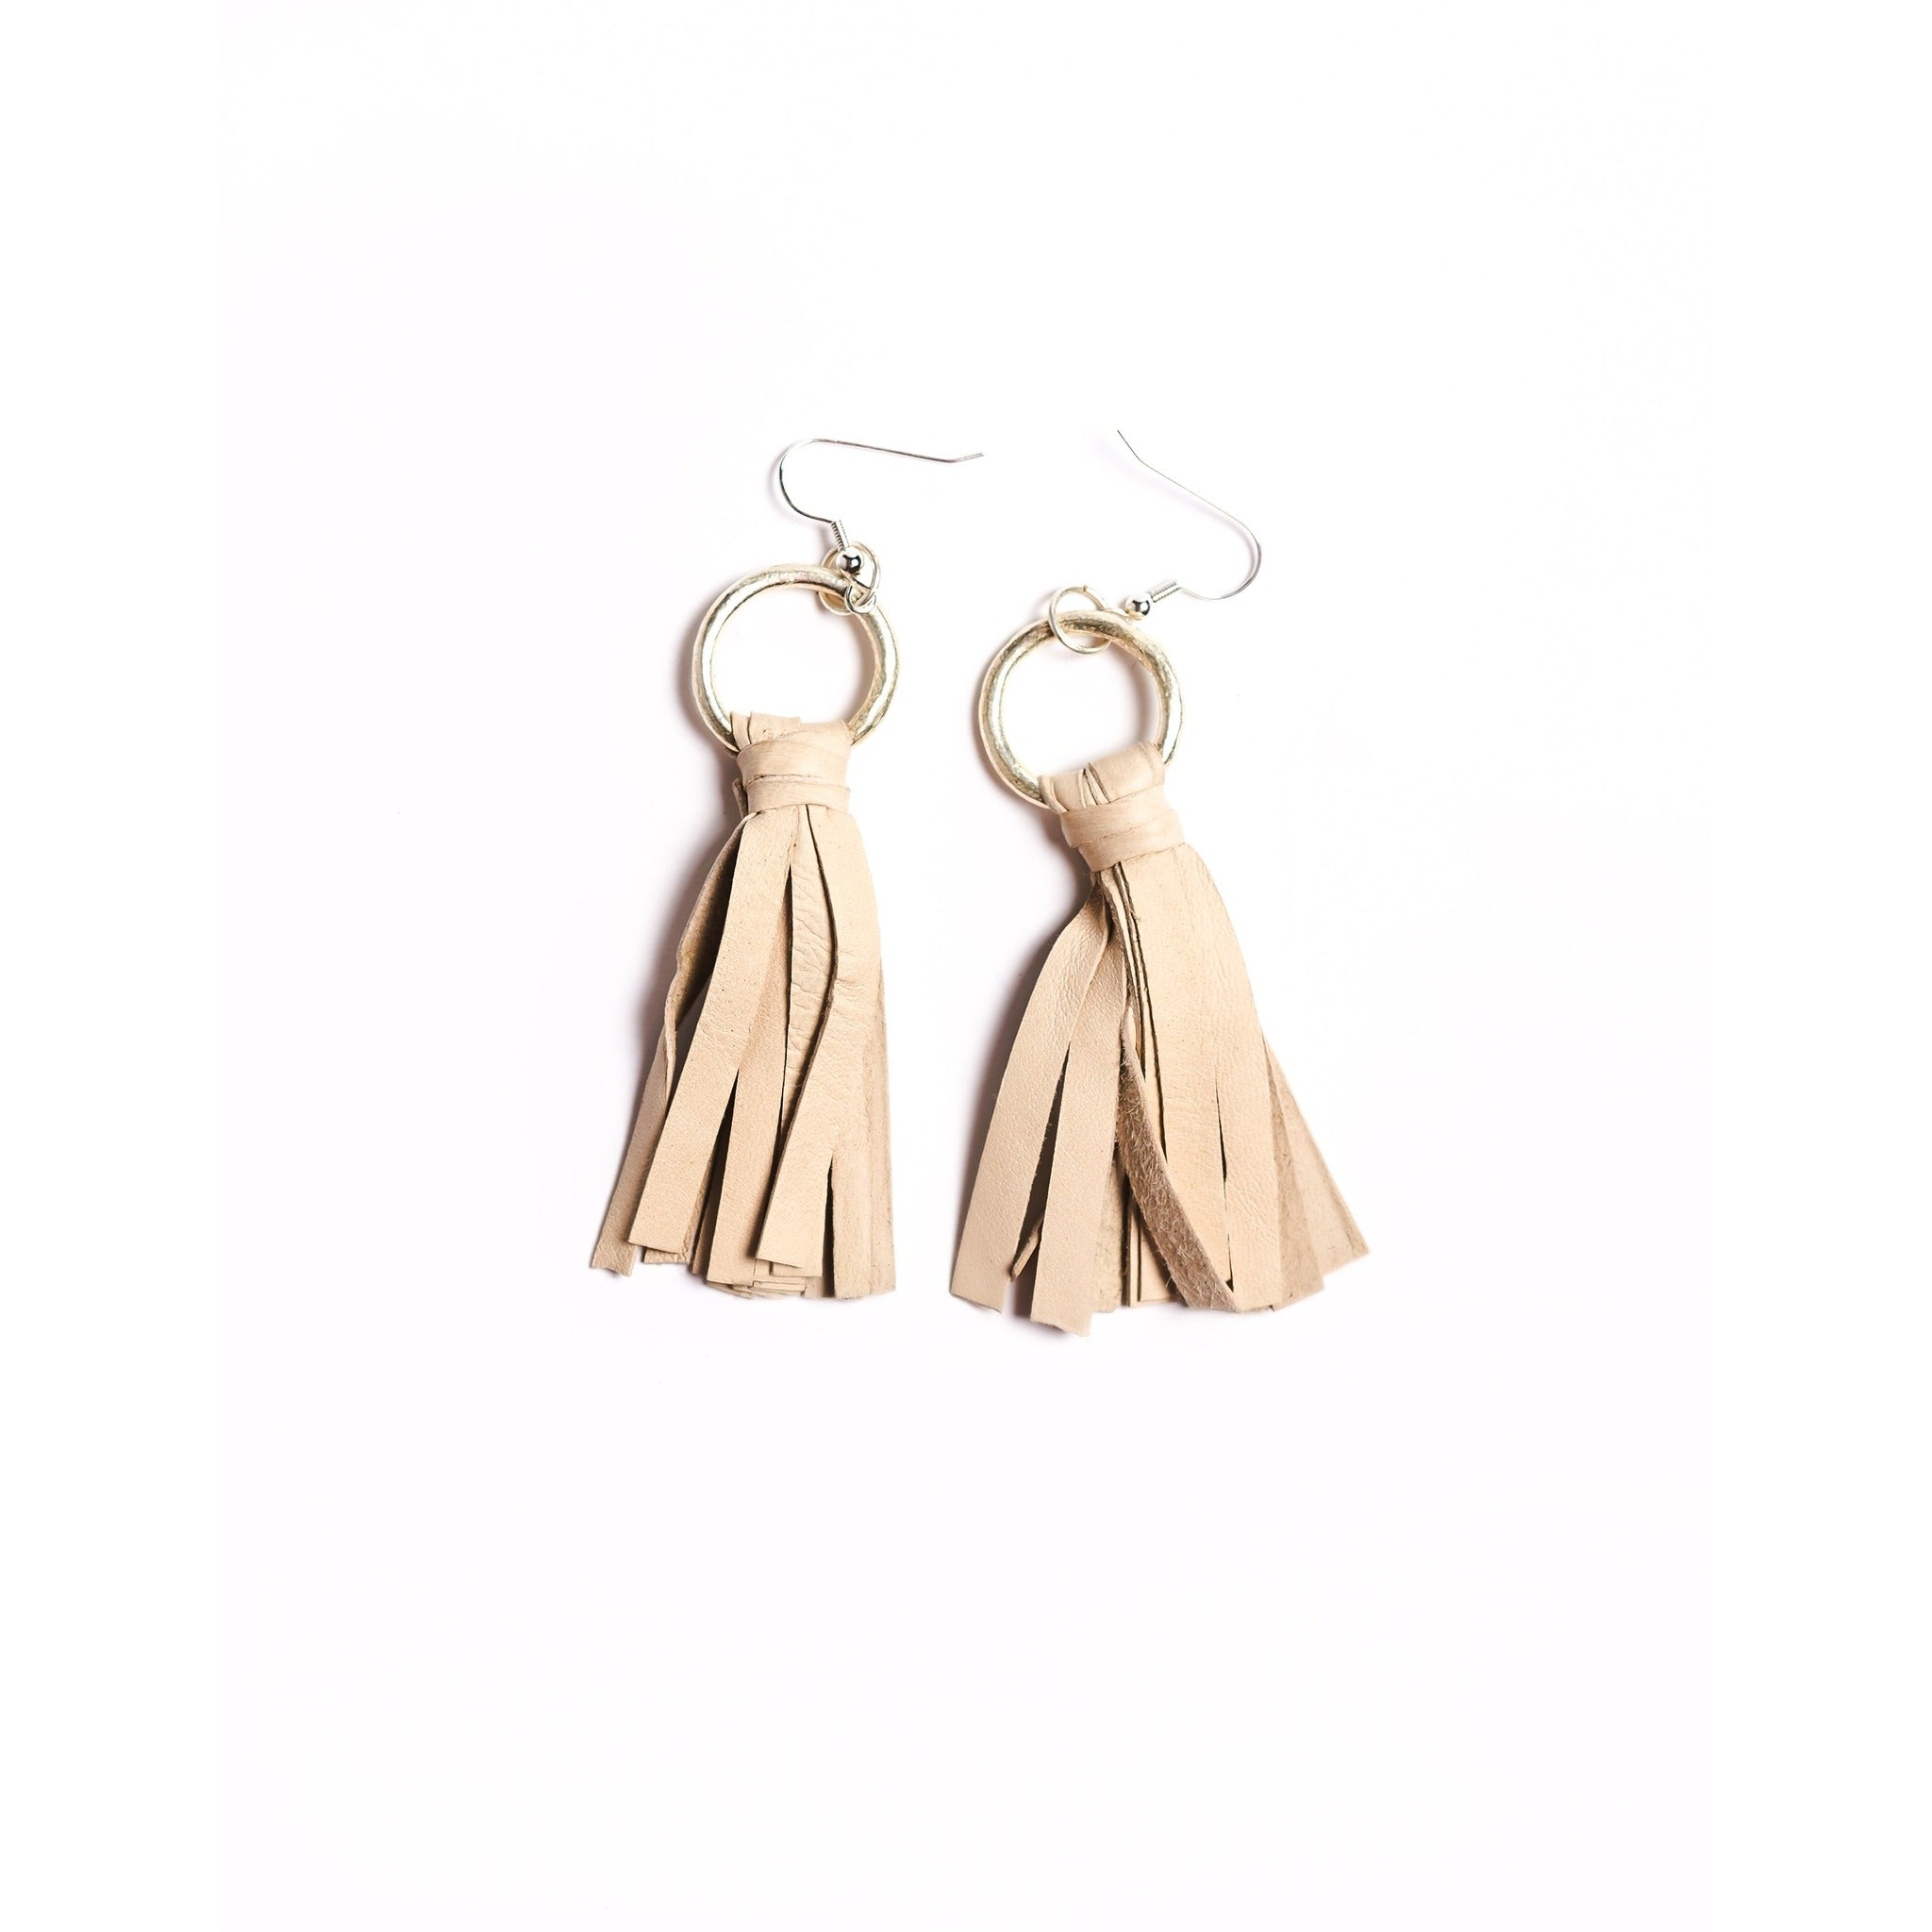 Tassel Earrings - Shop Collective Goods